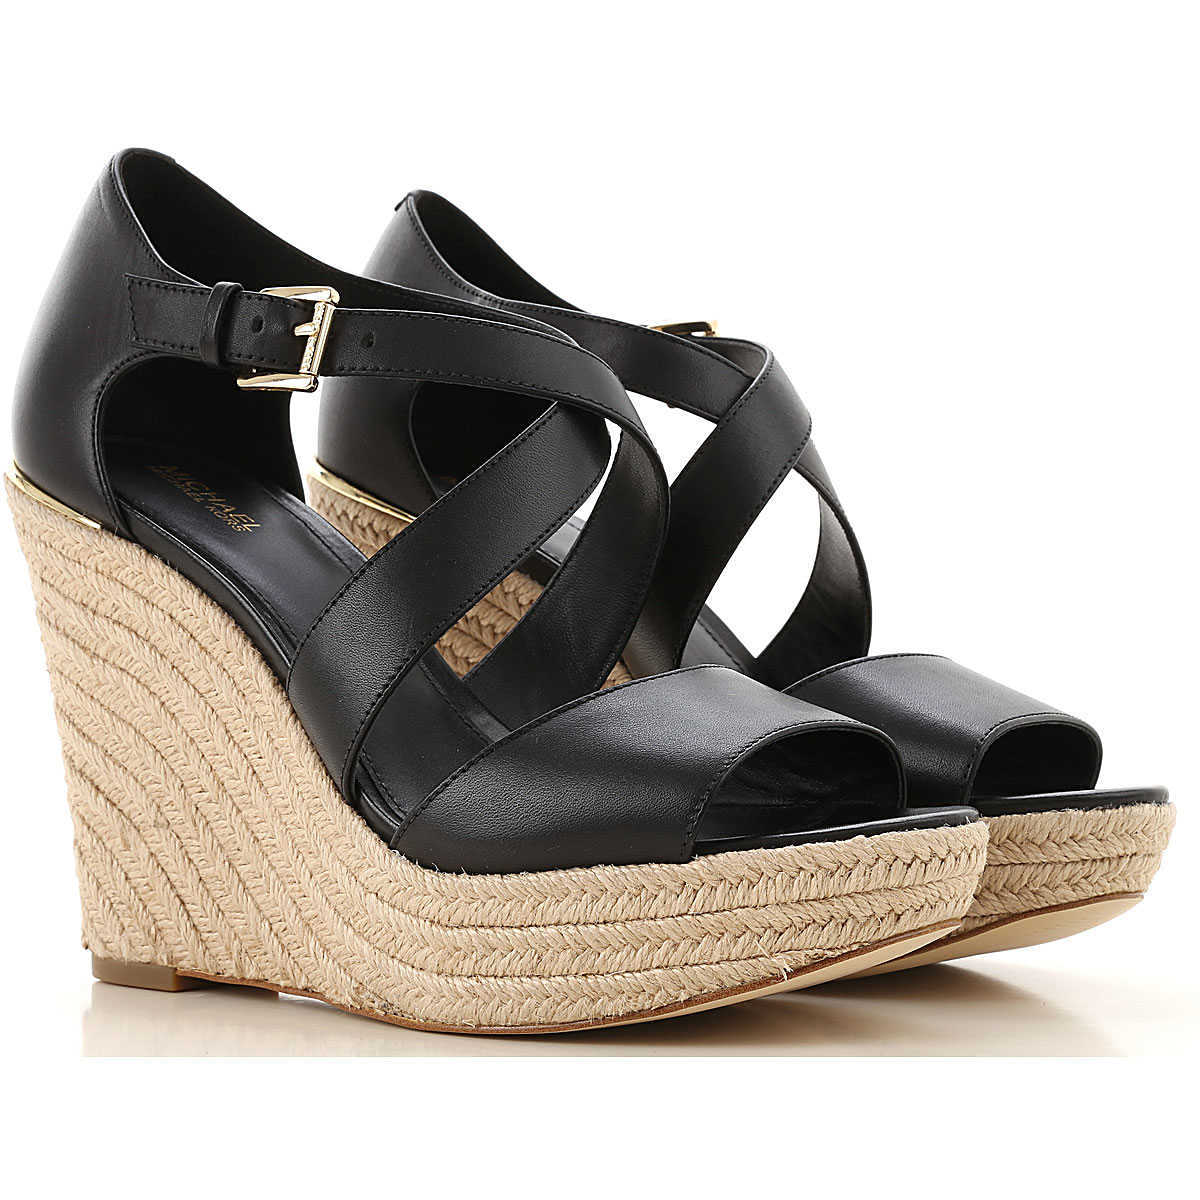 Michael Kors Wedges for Women On Sale Black UK - GOOFASH